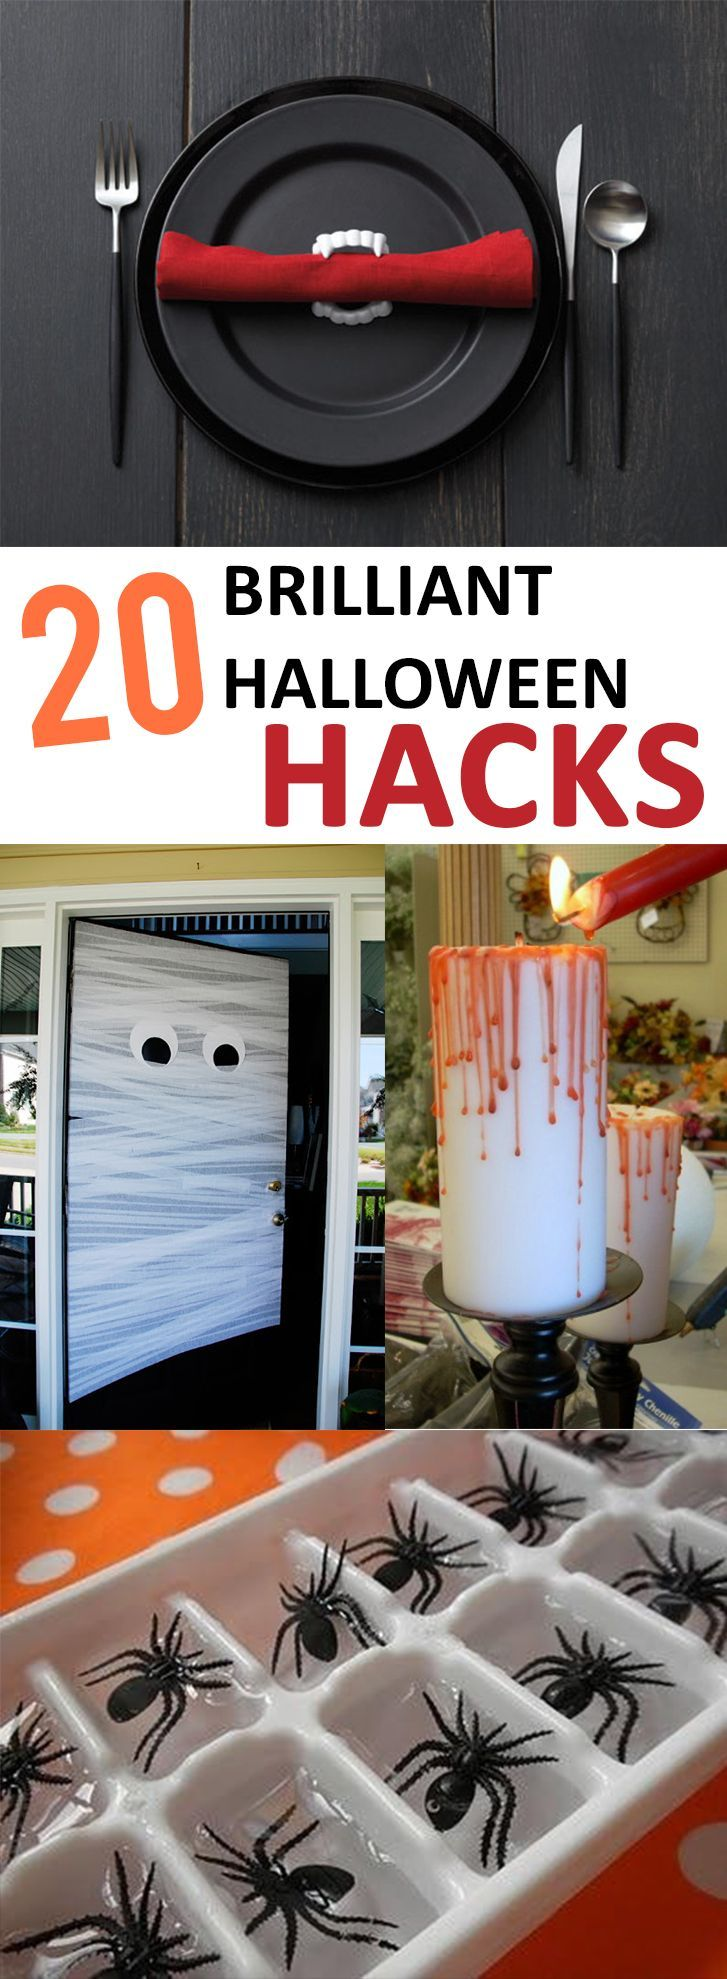 20 Brilliant Halloween Hacks